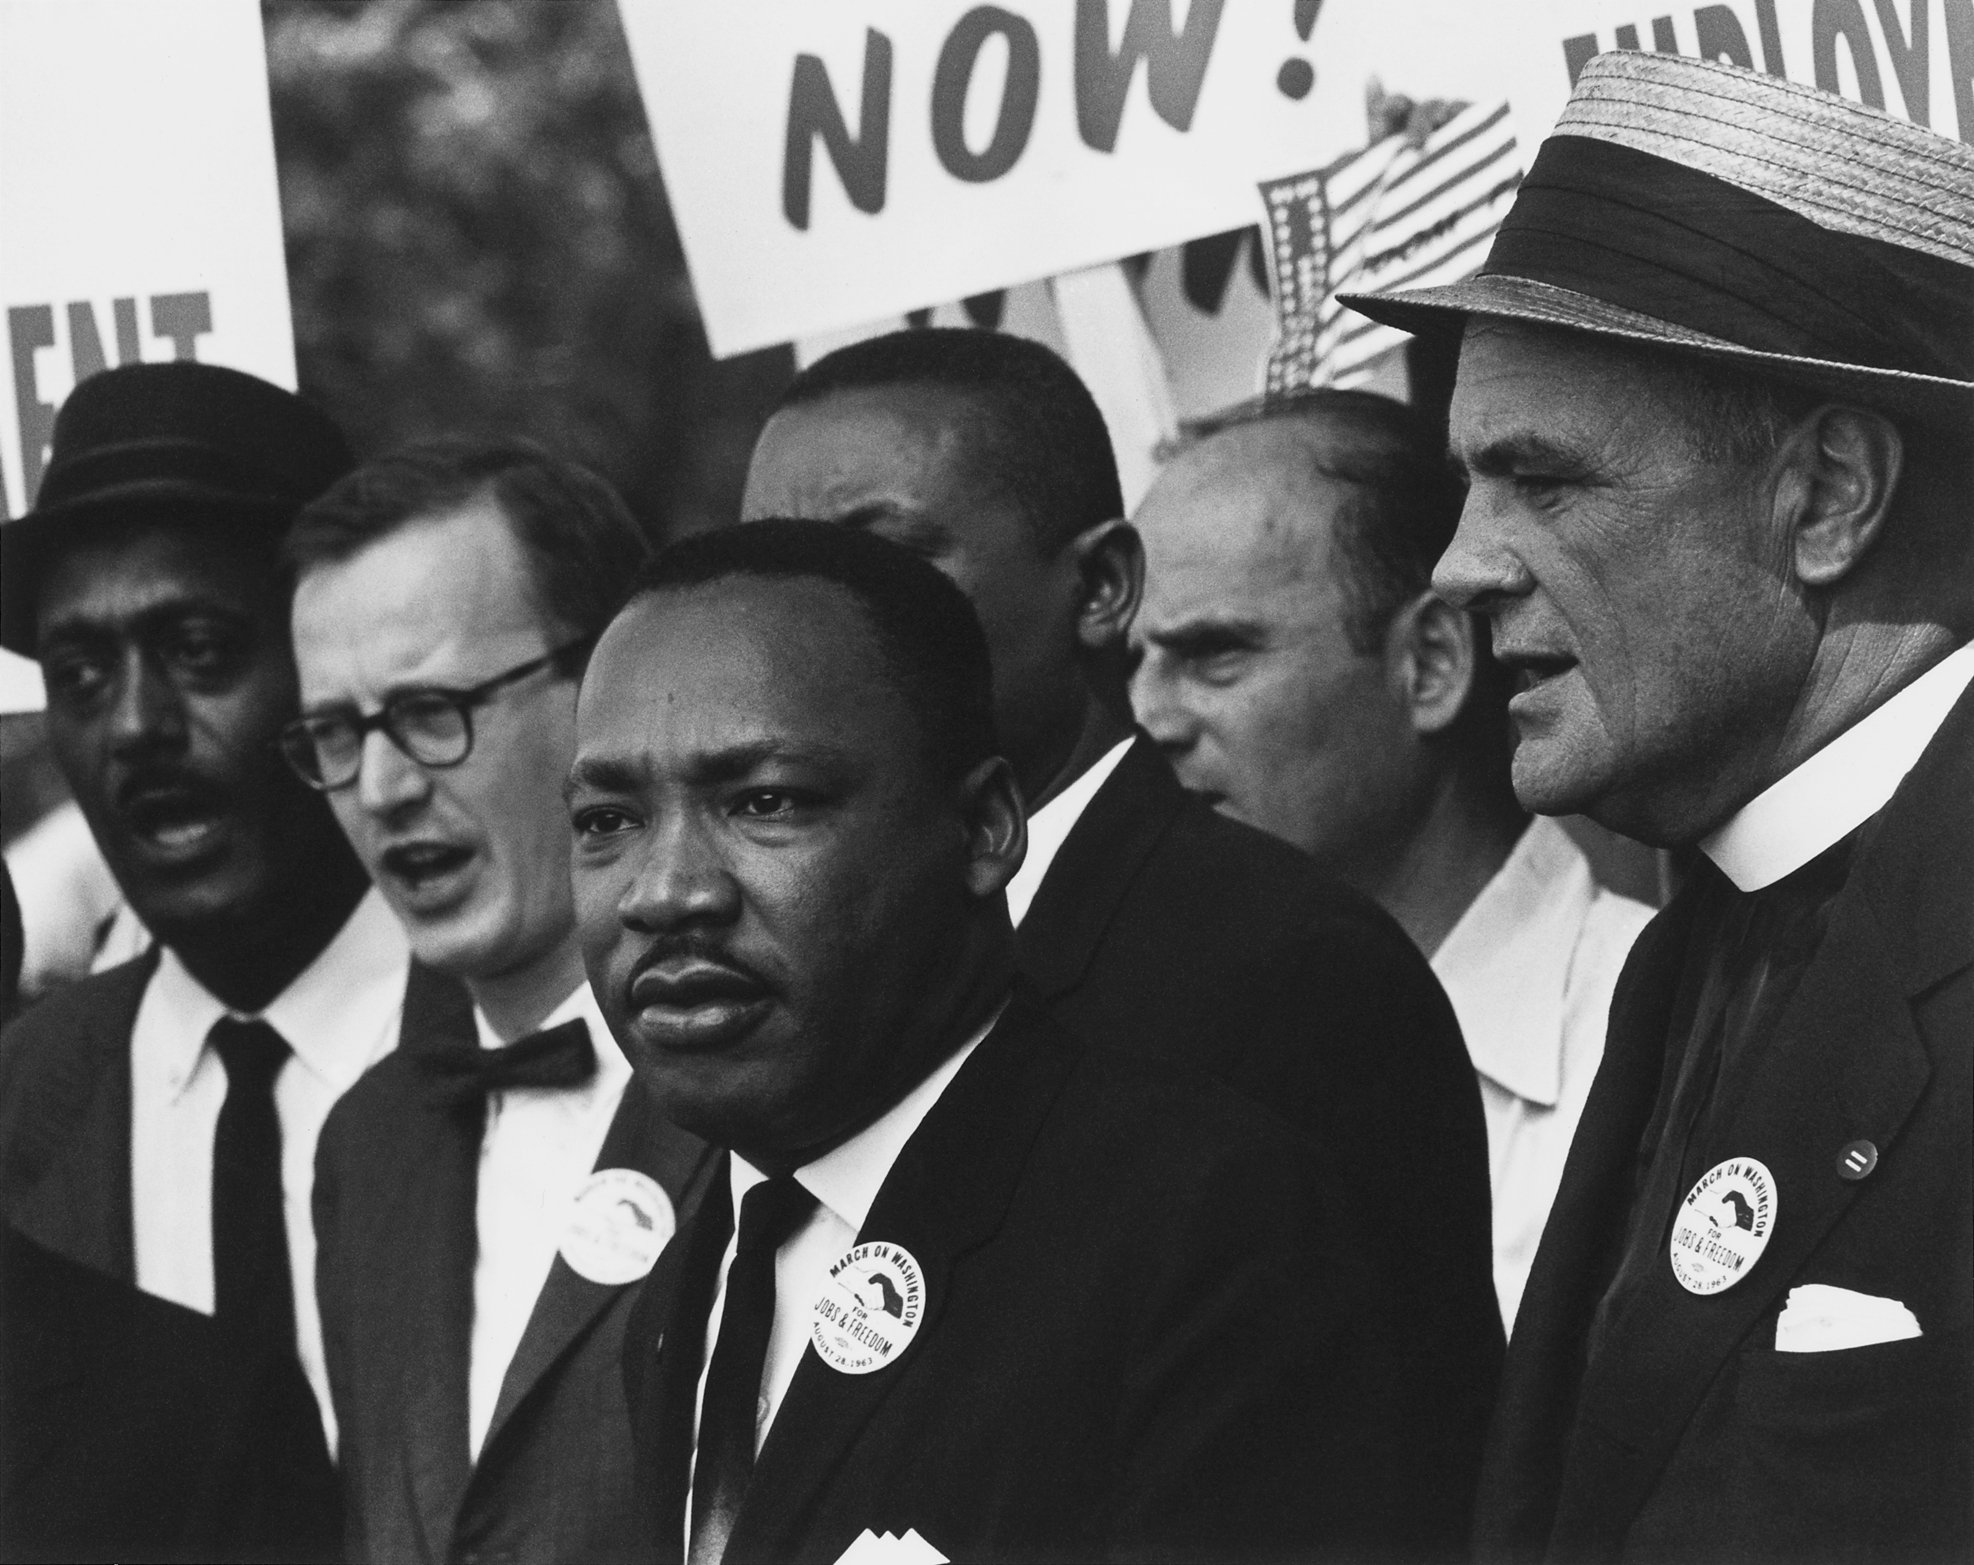 Photo of Martin Luther King Jr., the radical